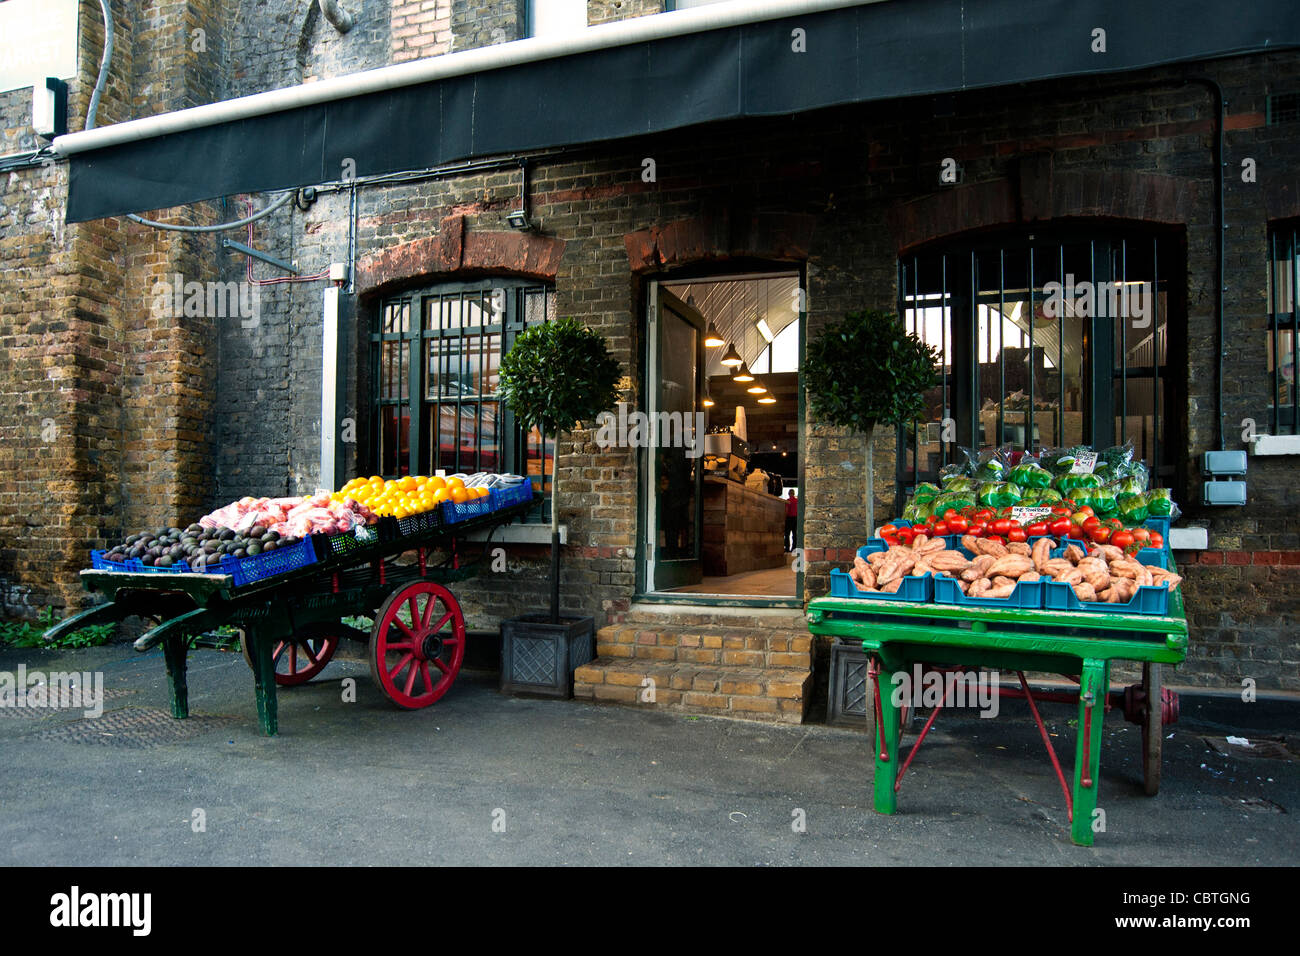 Pretty Fruit and Vegetable Stalls at Borough Farmers Market, London - Stock Image